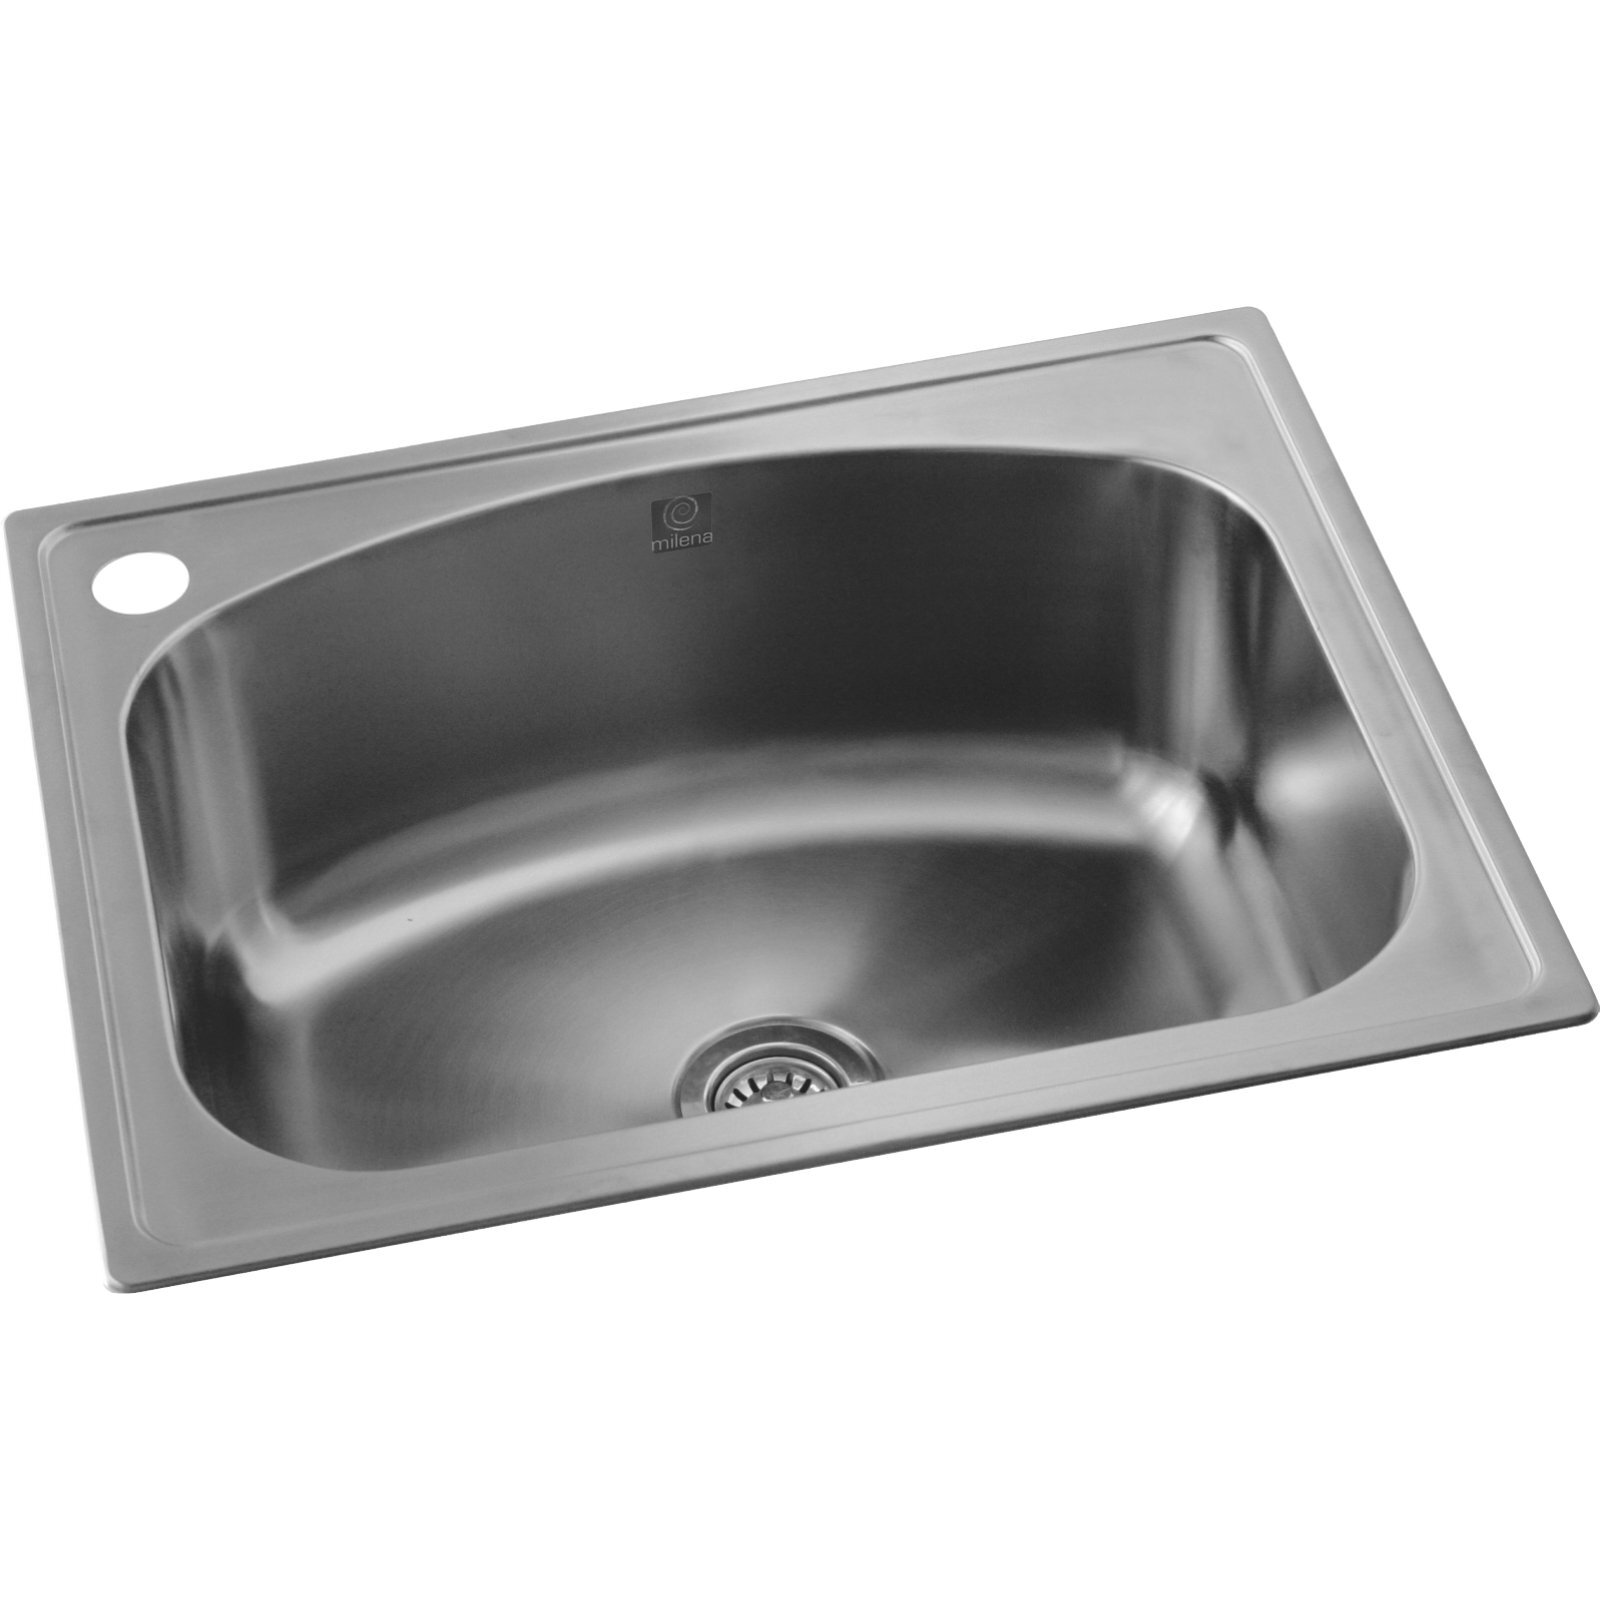 Milena 35L Stainless Steel Euro Inset Laundry Trough With Left Tap Hole